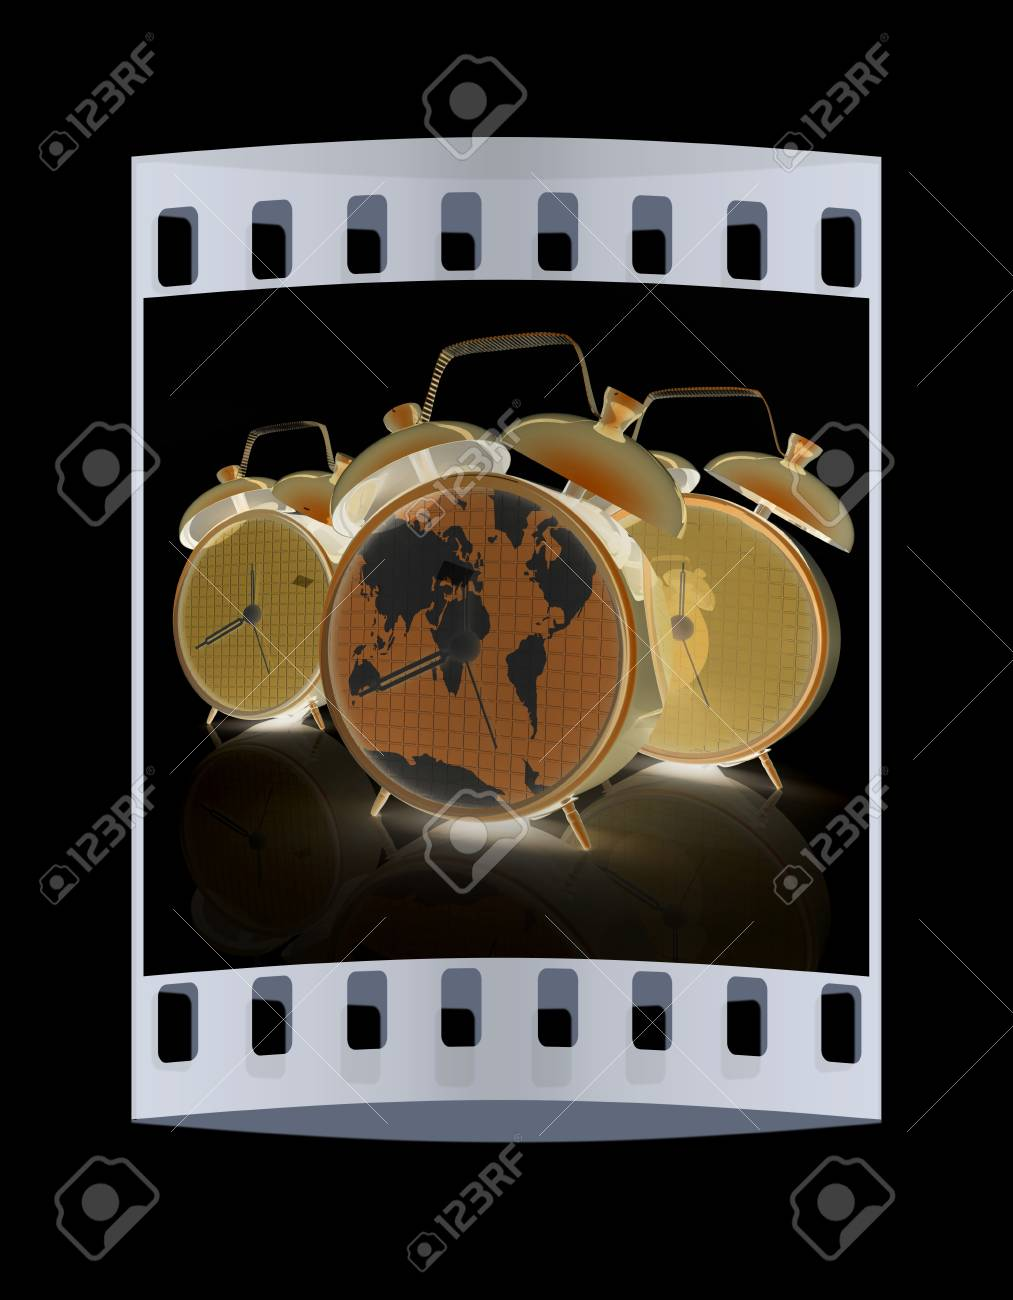 Alarm clock of world map and alarm clocks the film strip stock alarm clock of world map and alarm clocks the film strip stock photo 45090333 gumiabroncs Image collections